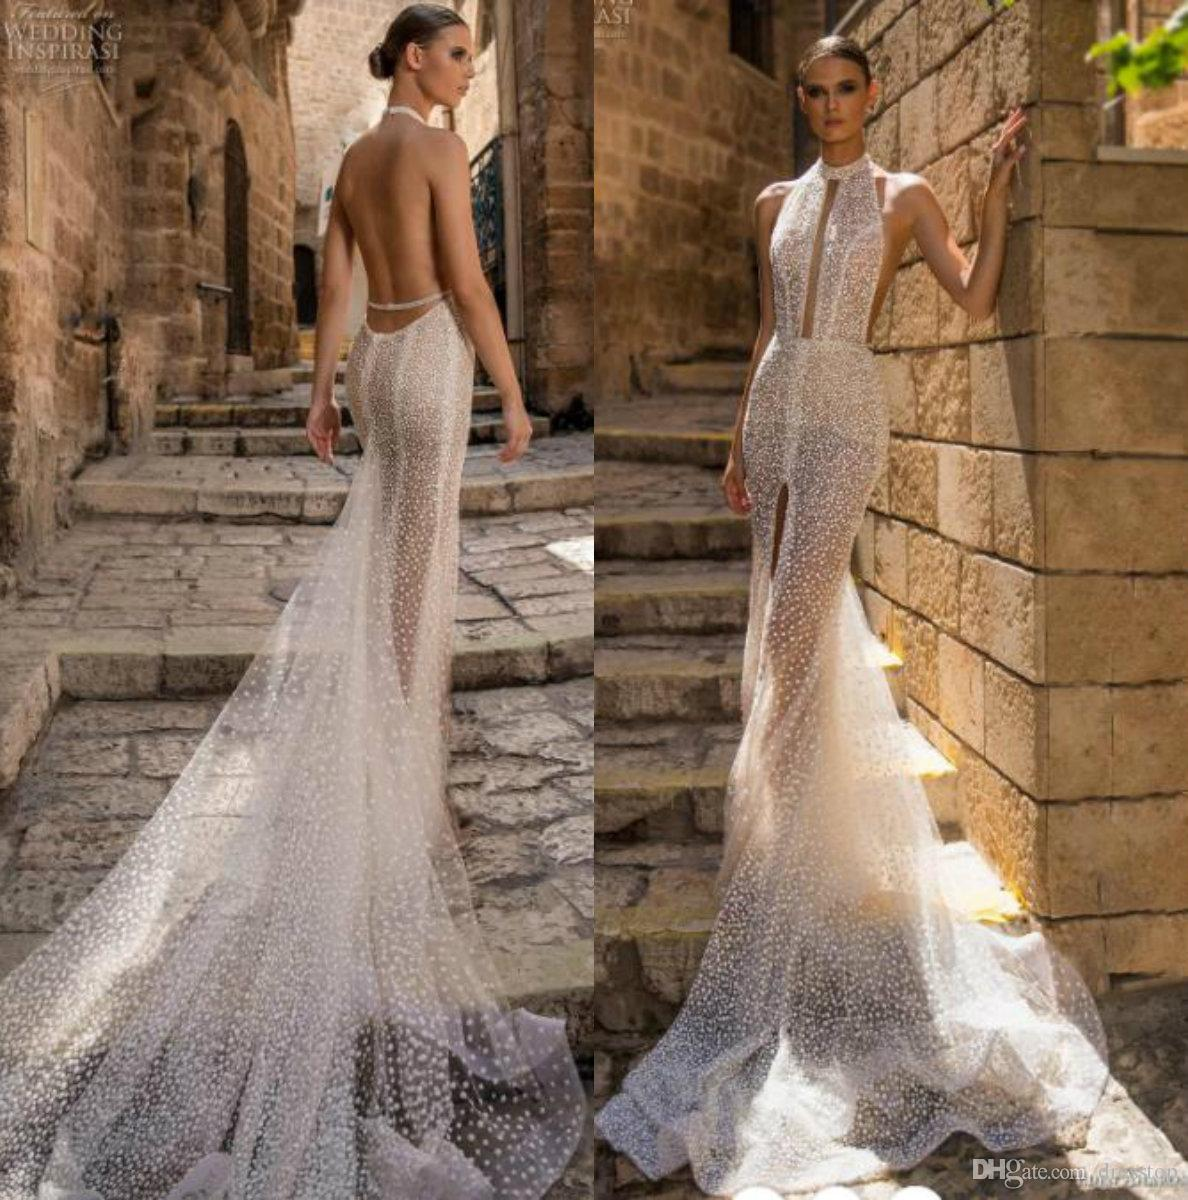 d3010e468203 Eden Aharon 2019 Mermaid Wedding Dresses Halter Dot Lace Bridal Gowns  Backless Beach Boho Plus Size See Through Wedding Dress Wedding Dress Sale  Wedding ...